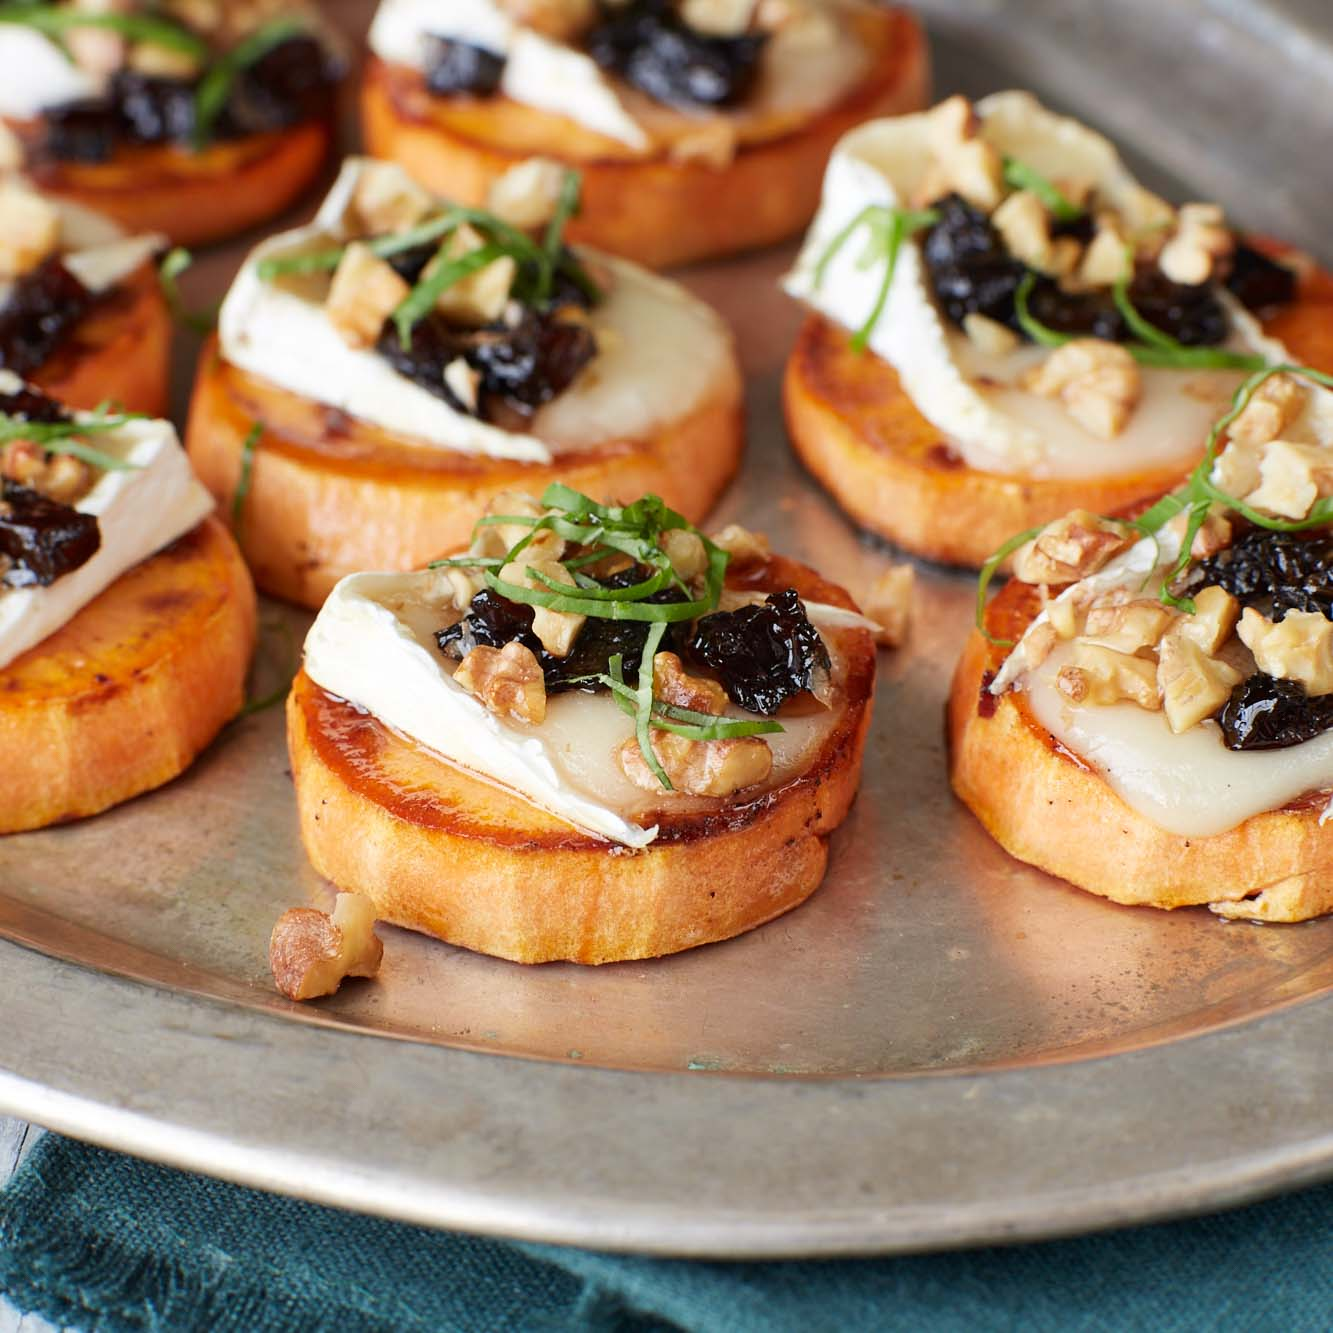 <p>With the sweet potatoes taking the place of bread, this simple but decadent recipe is the gluten-free answer to classic crostini. Seasoning prunes with a little vinegar gives the crostini a sweet-savory background.</p>